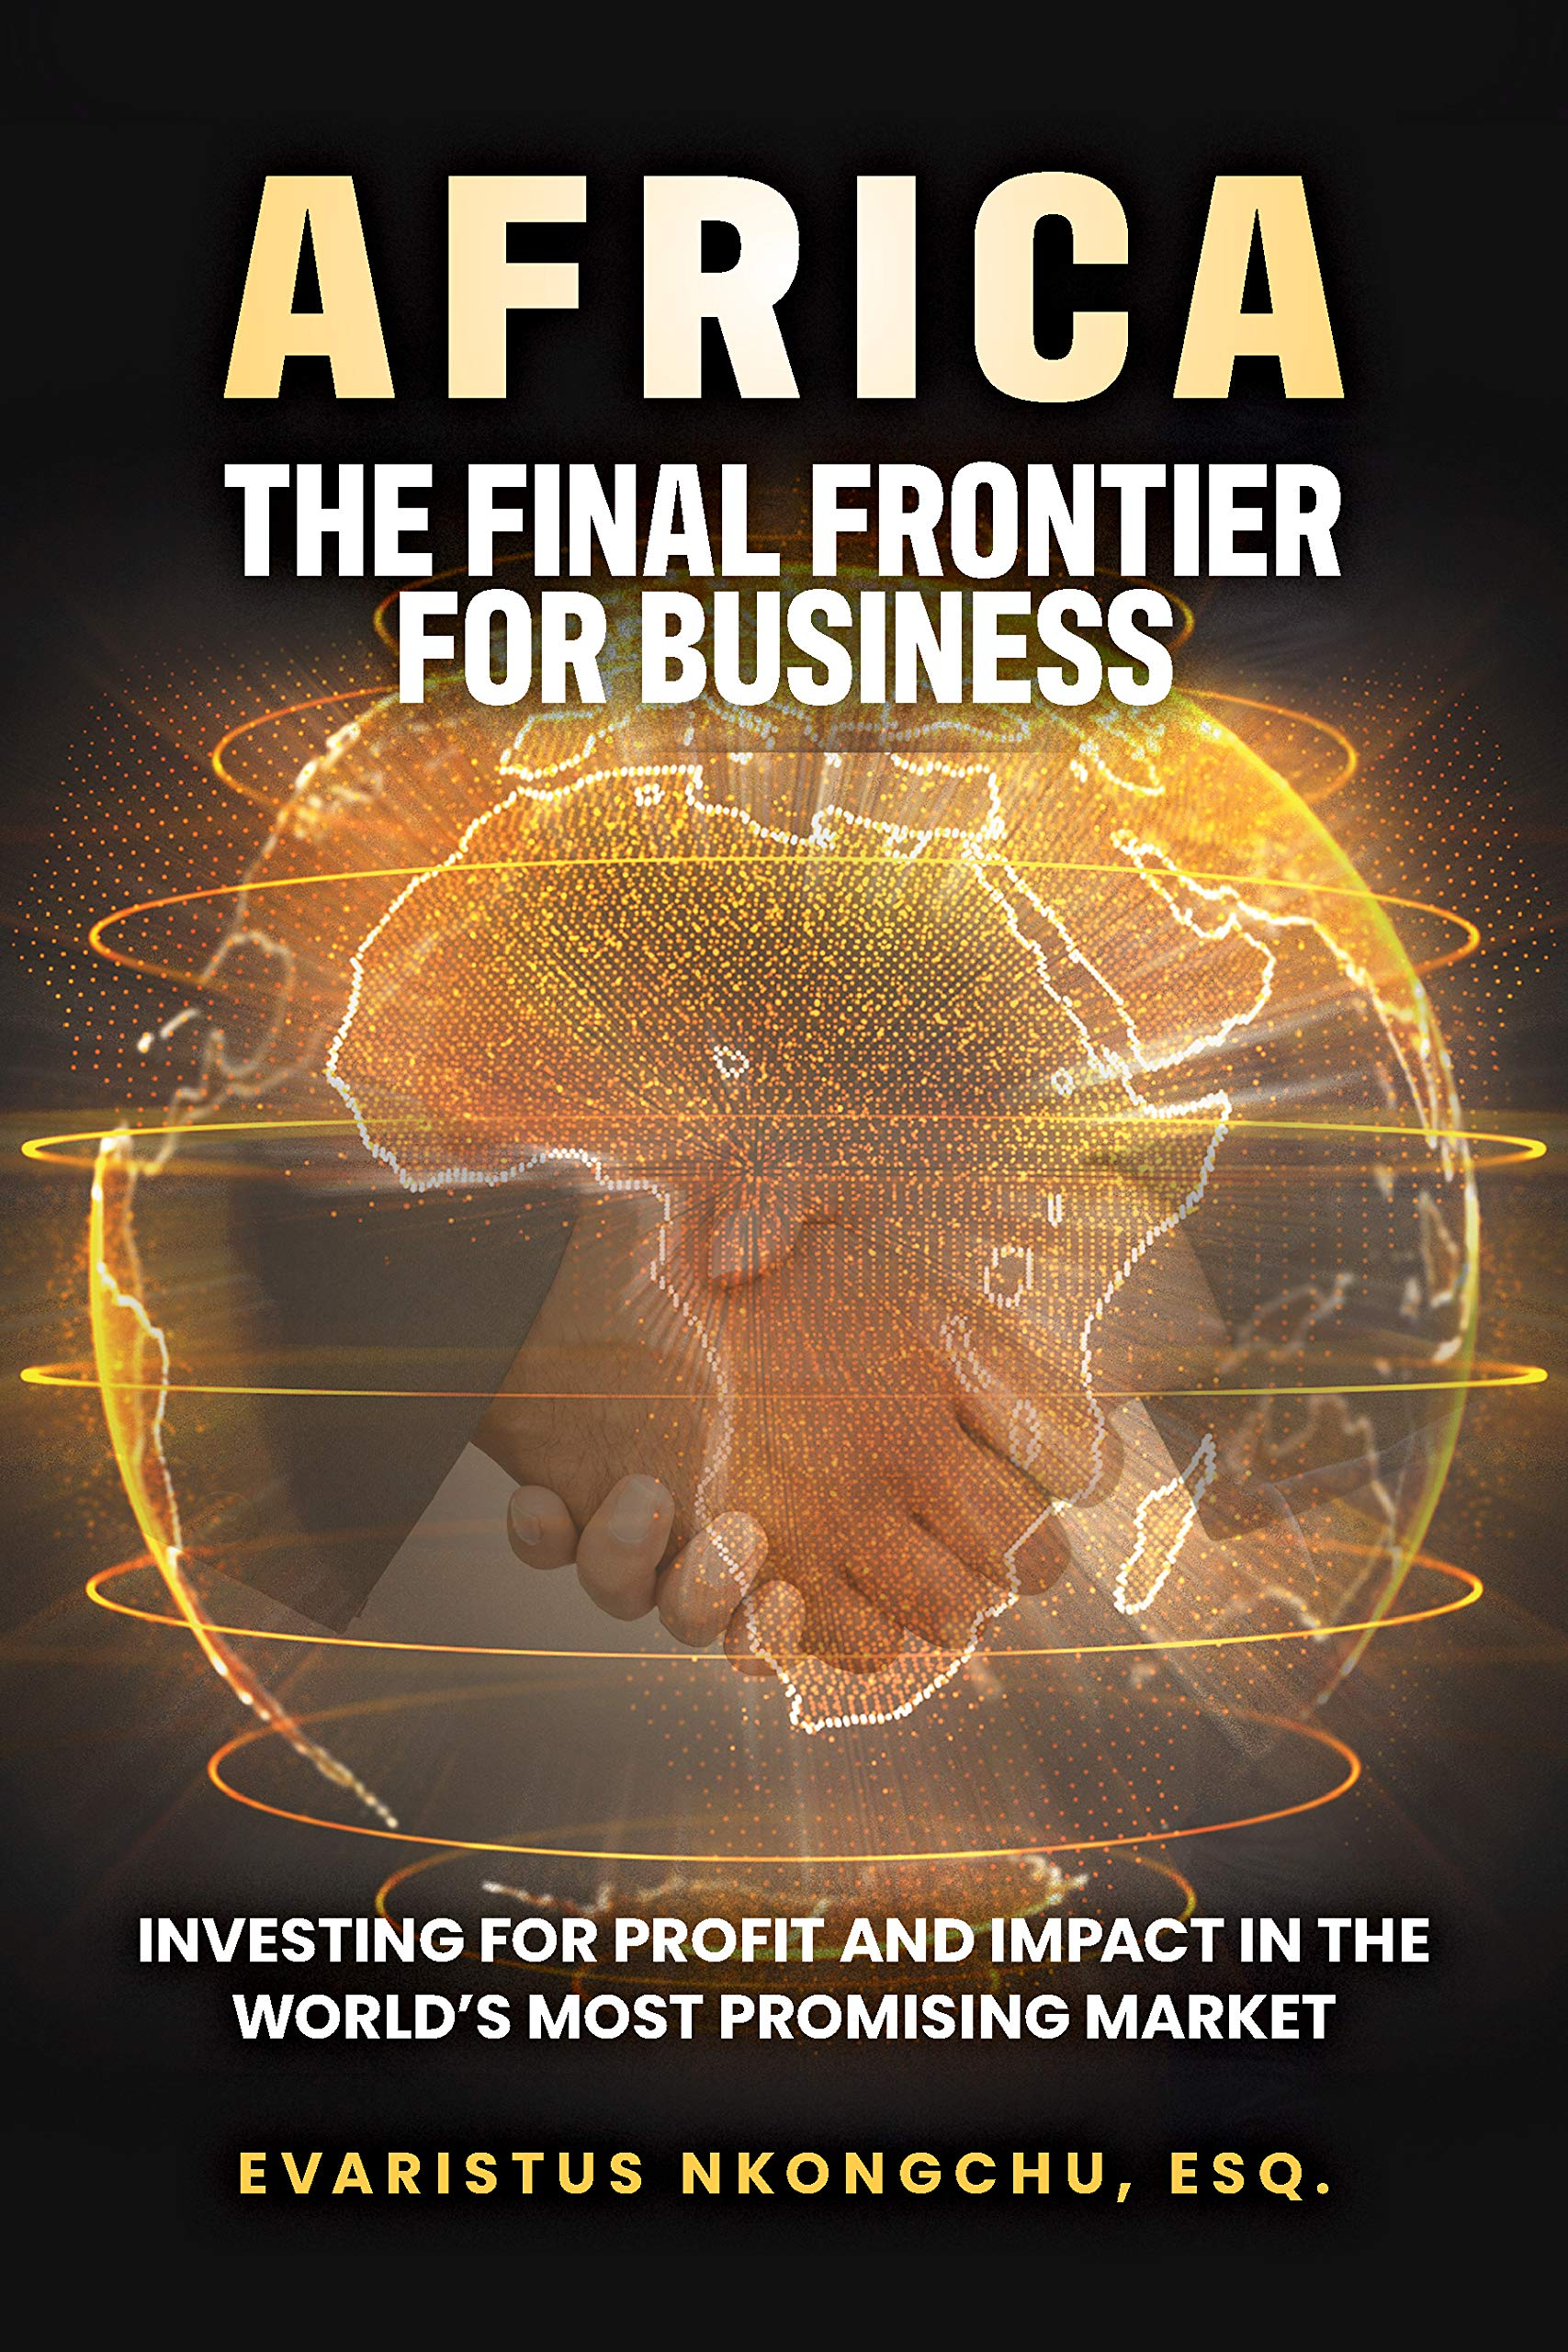 Africa, the Final Frontier for Business: Investing for Profit and Impact in the World's Most Promising Market